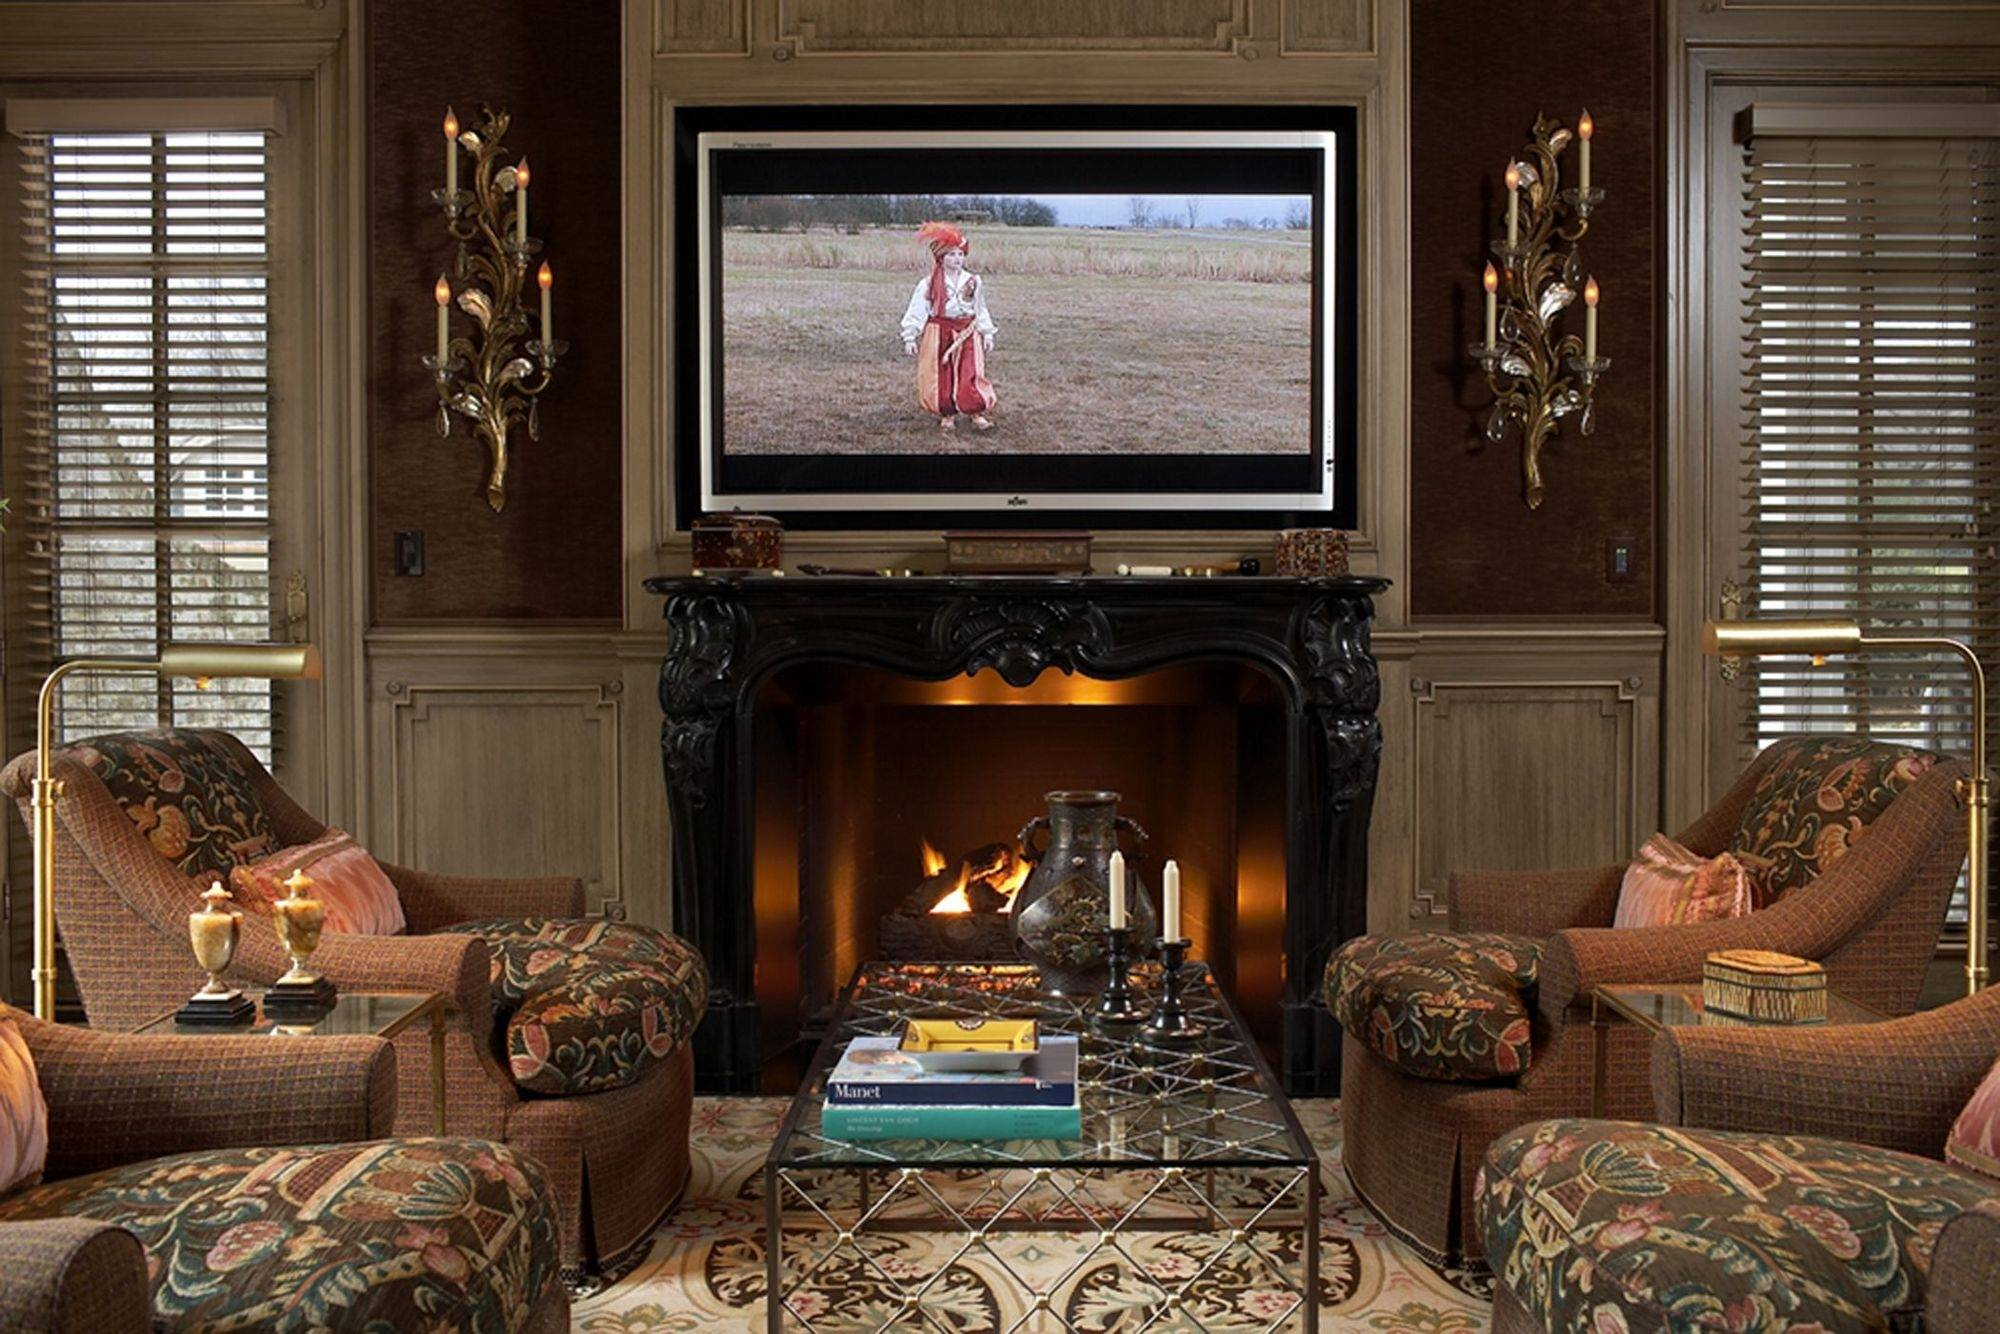 Scott Salvator Made The TV The Star By Hanging It Above A Fireplace And  Framing It